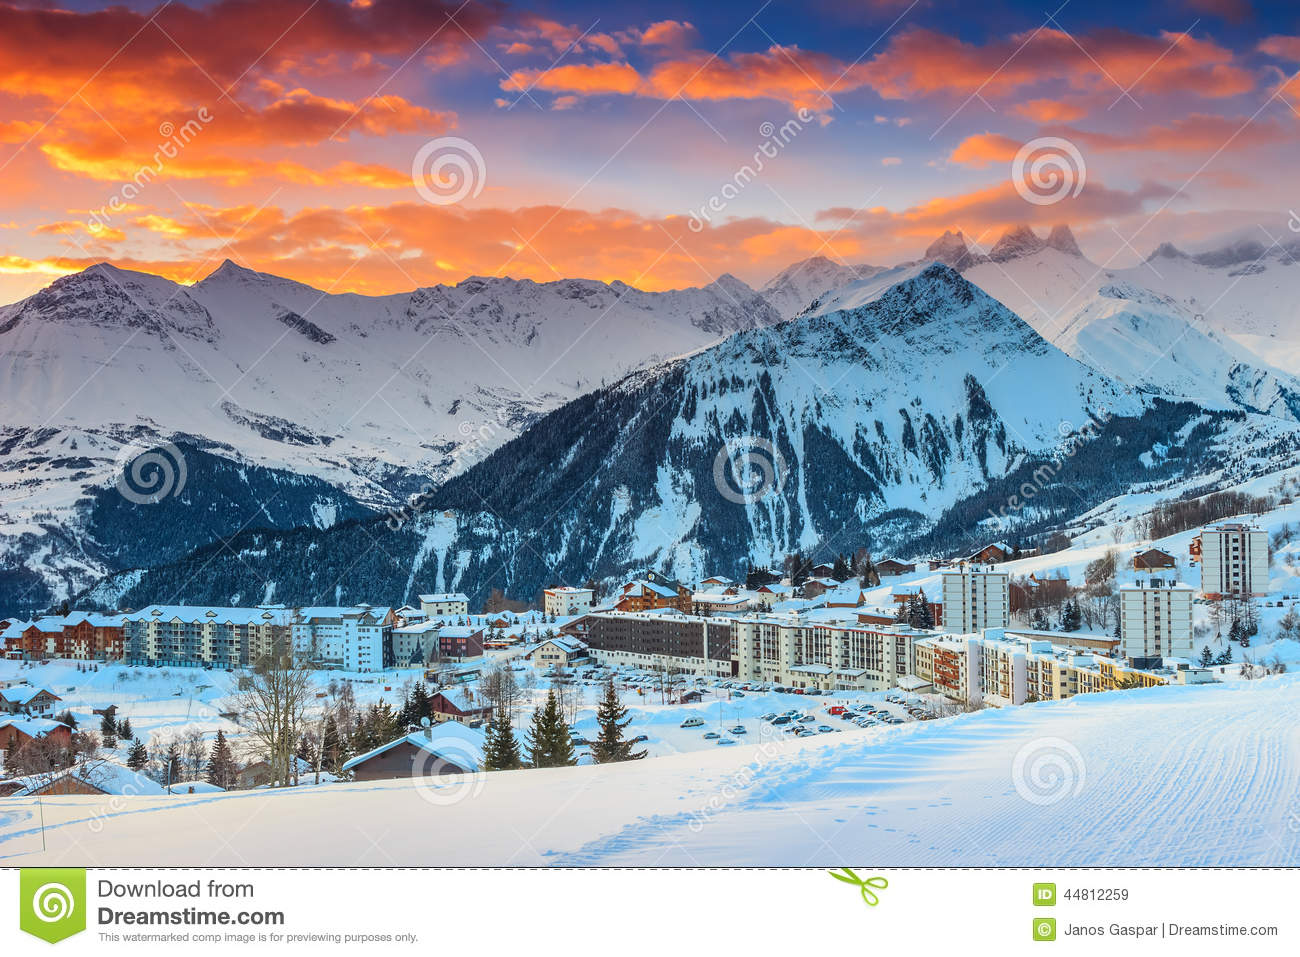 famous ski resort in the alps,les sybelles,france,europe stock image